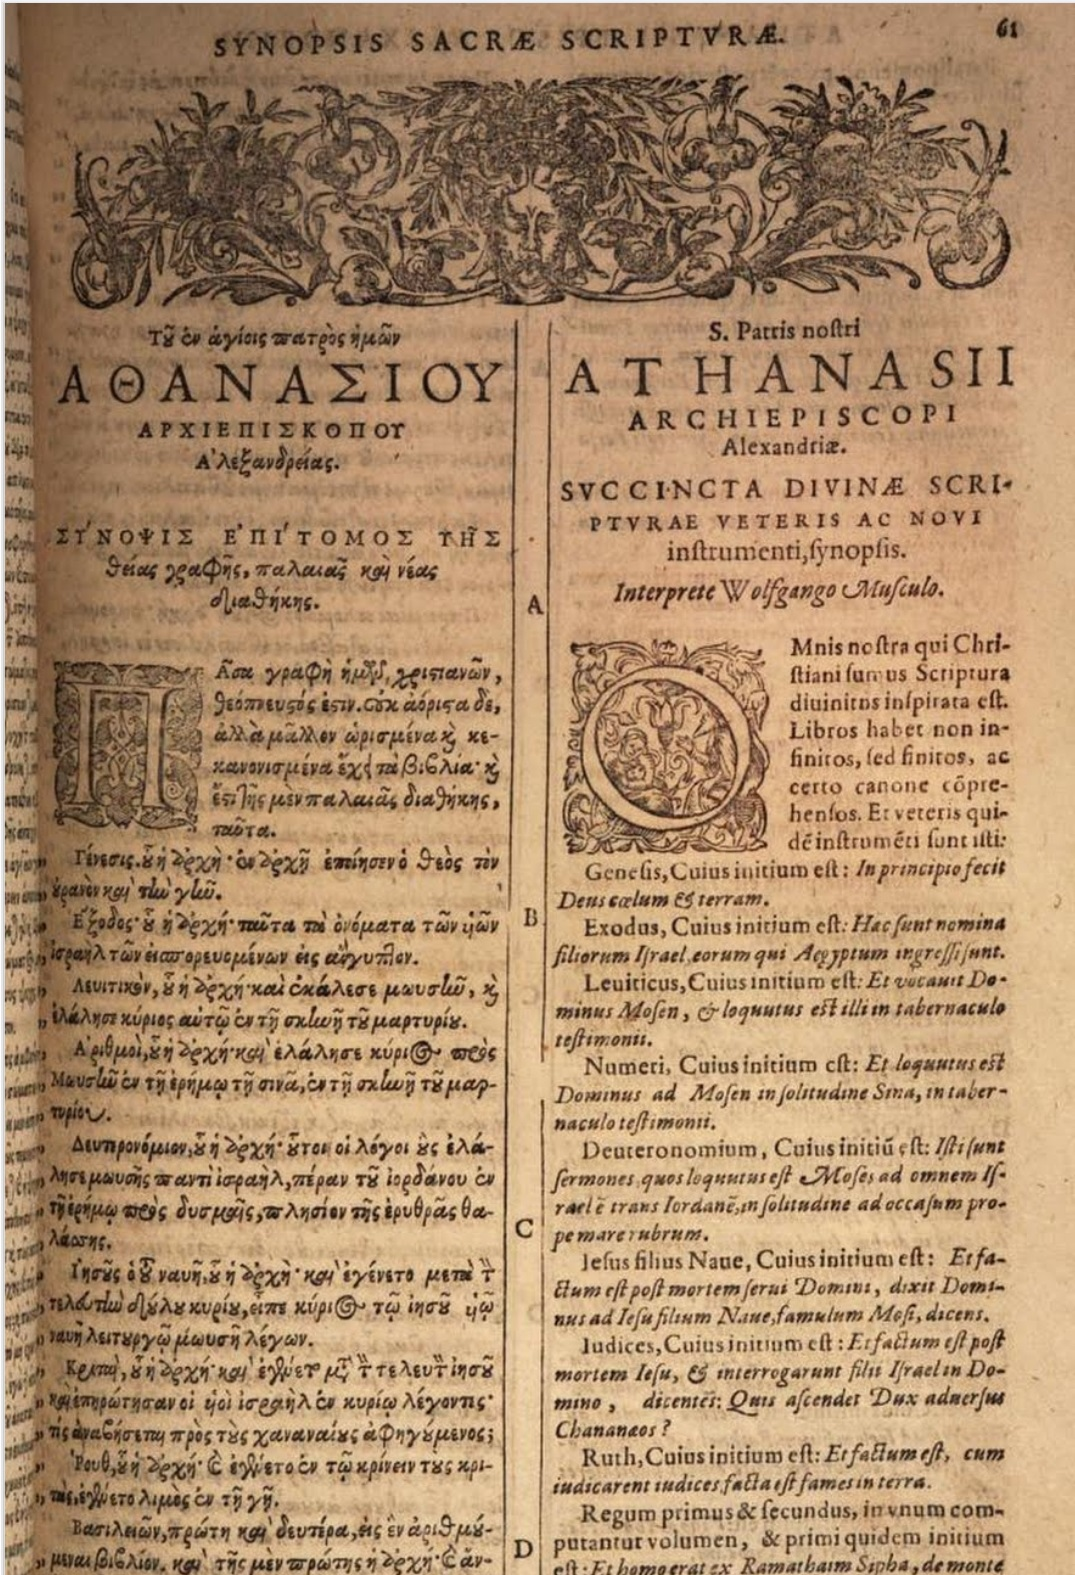 Electra atlantis digital approaches to antiquity synopsis scripturae sacrae in felkmanns edition of athanasius 1600 fandeluxe Choice Image